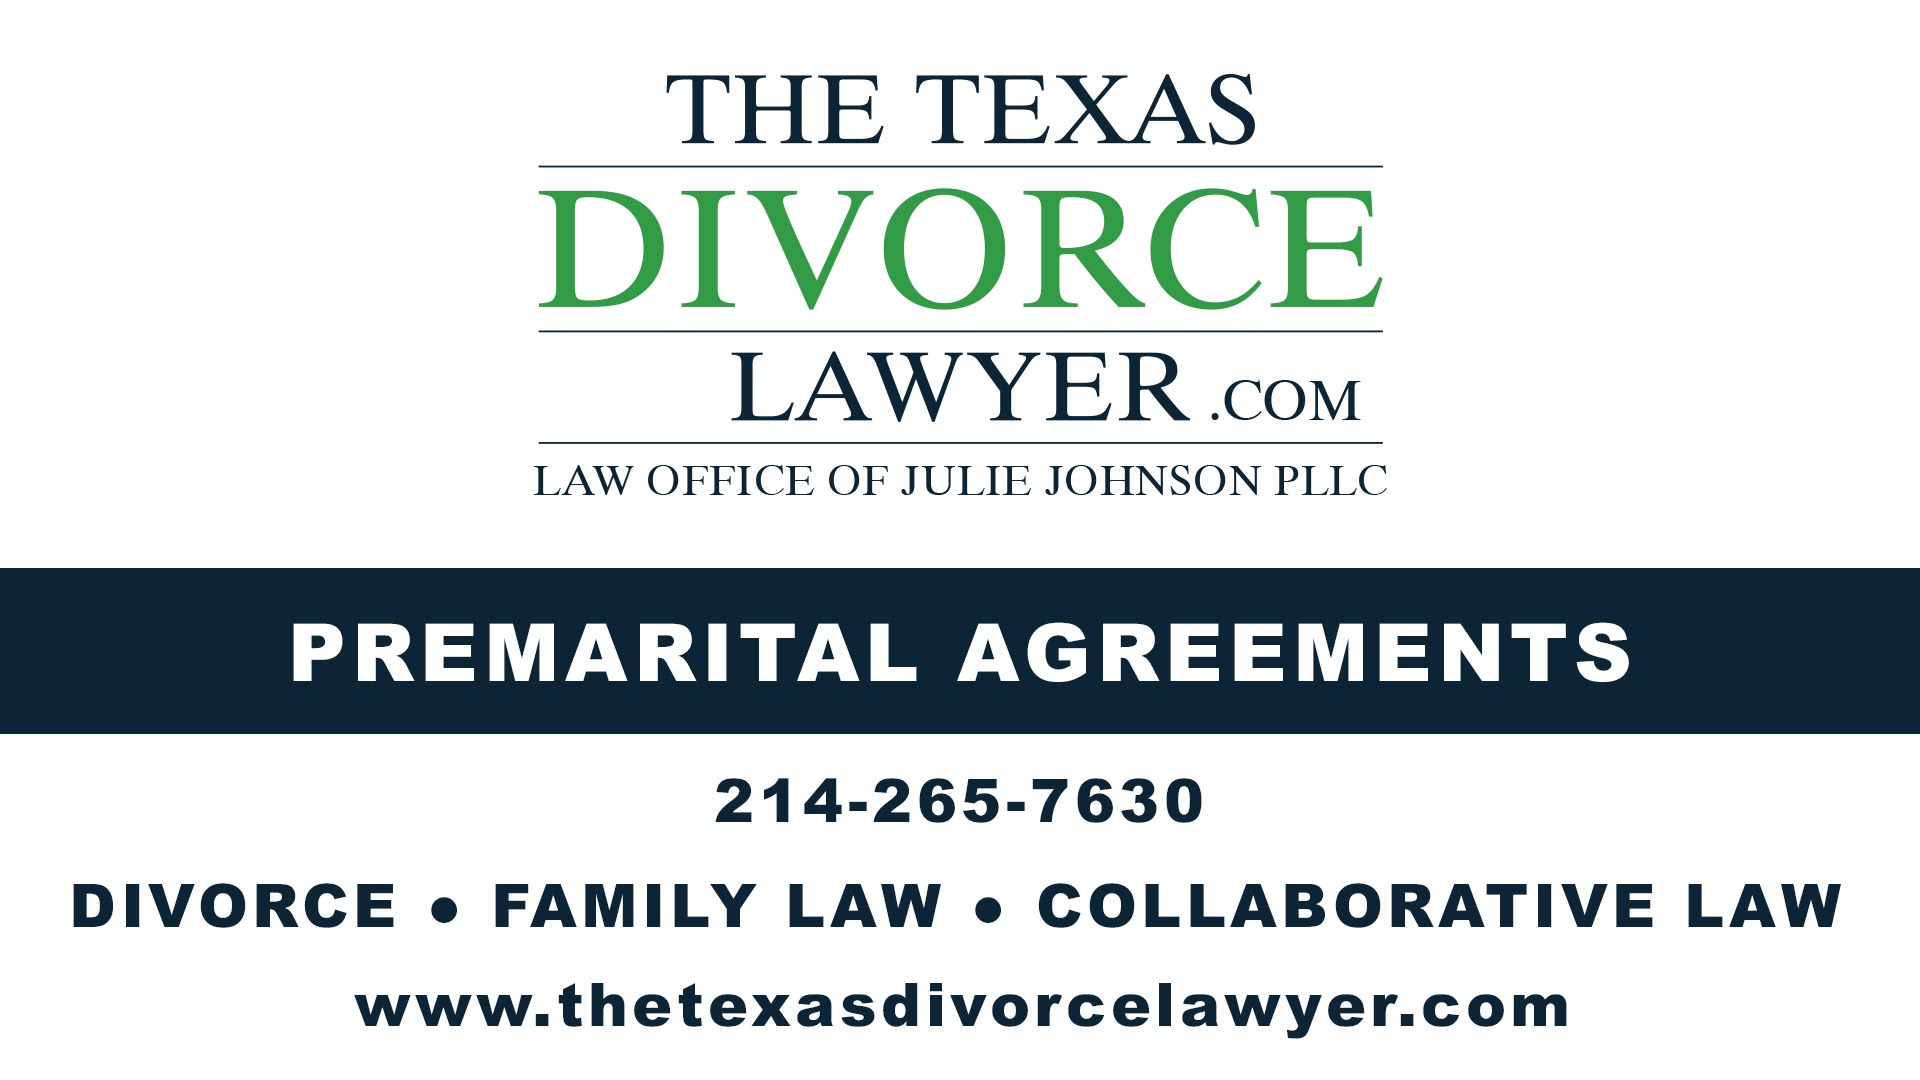 Dallas Premarital Agreement Attorney The Texas Divorce Lawyer